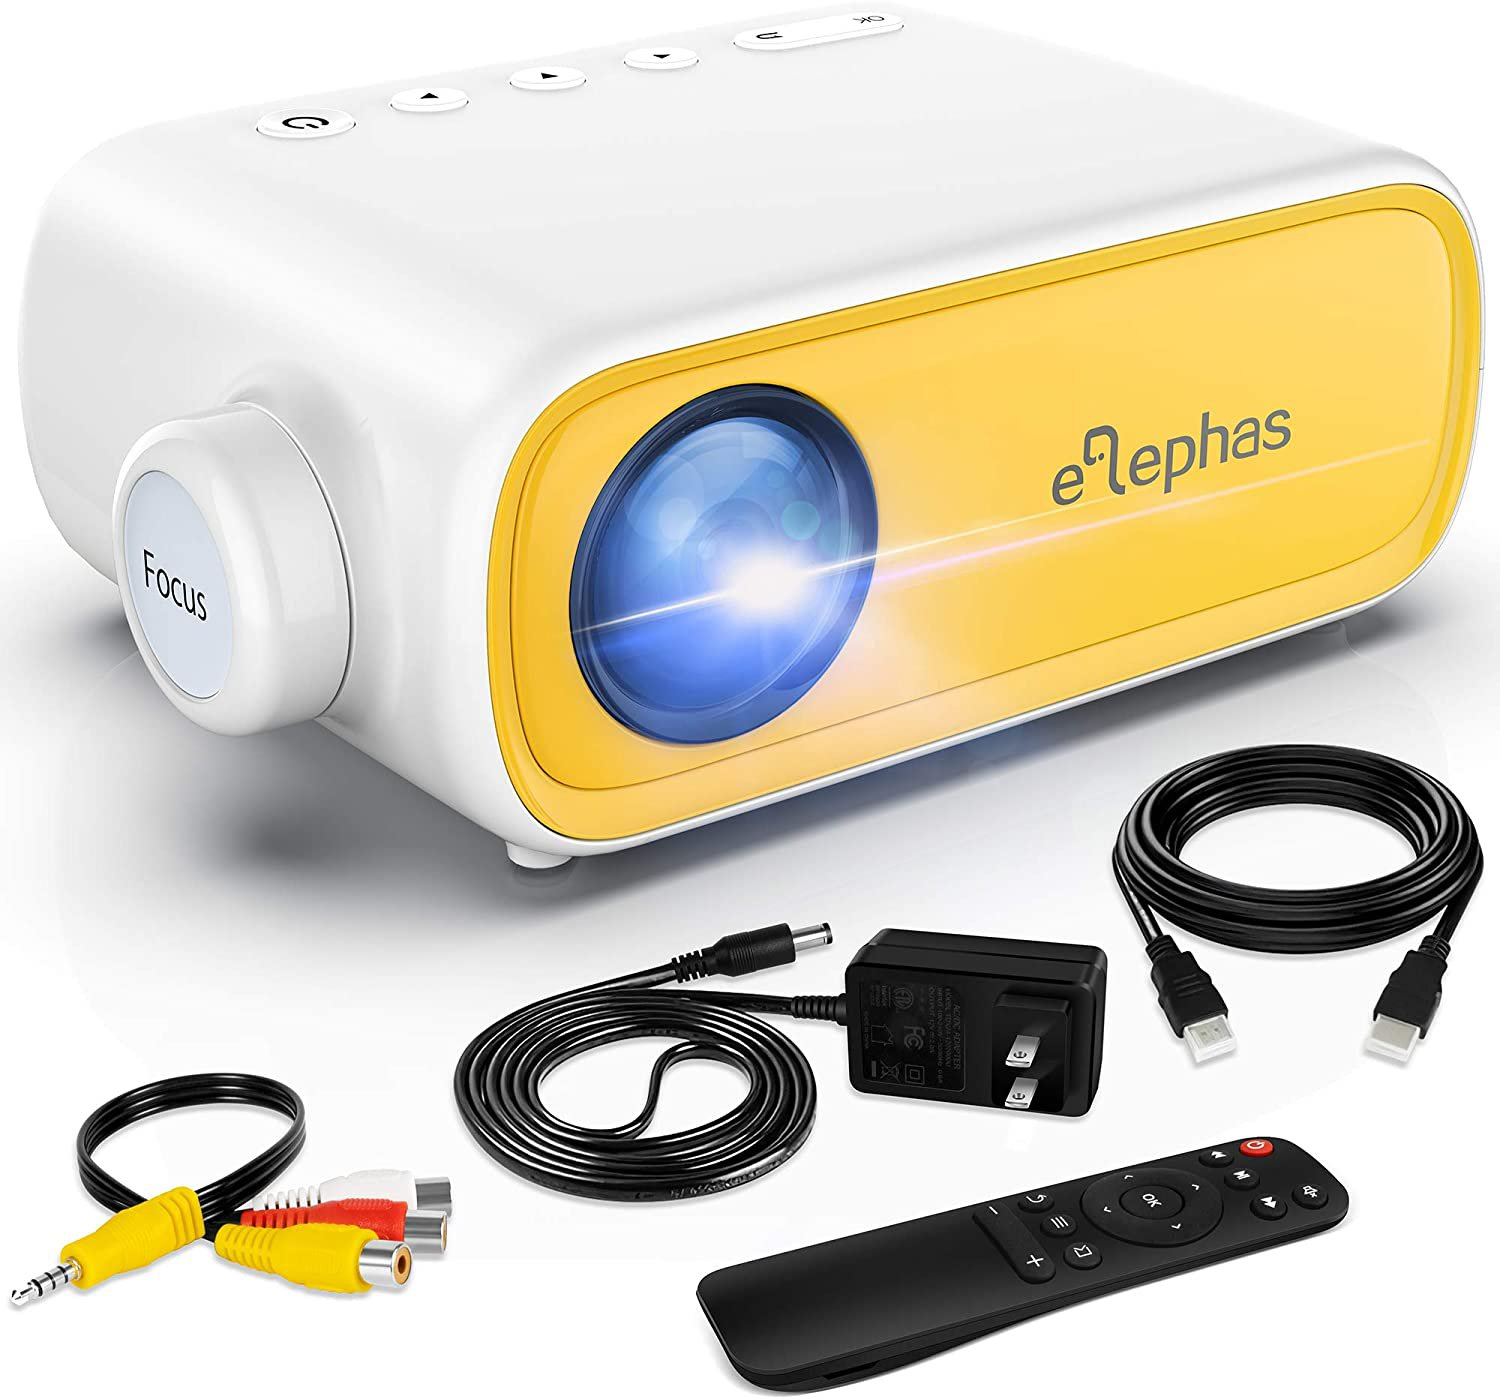 Mini Projector, Portable Projector for iPhone, Video Smart Led Pocket Pico Small Home